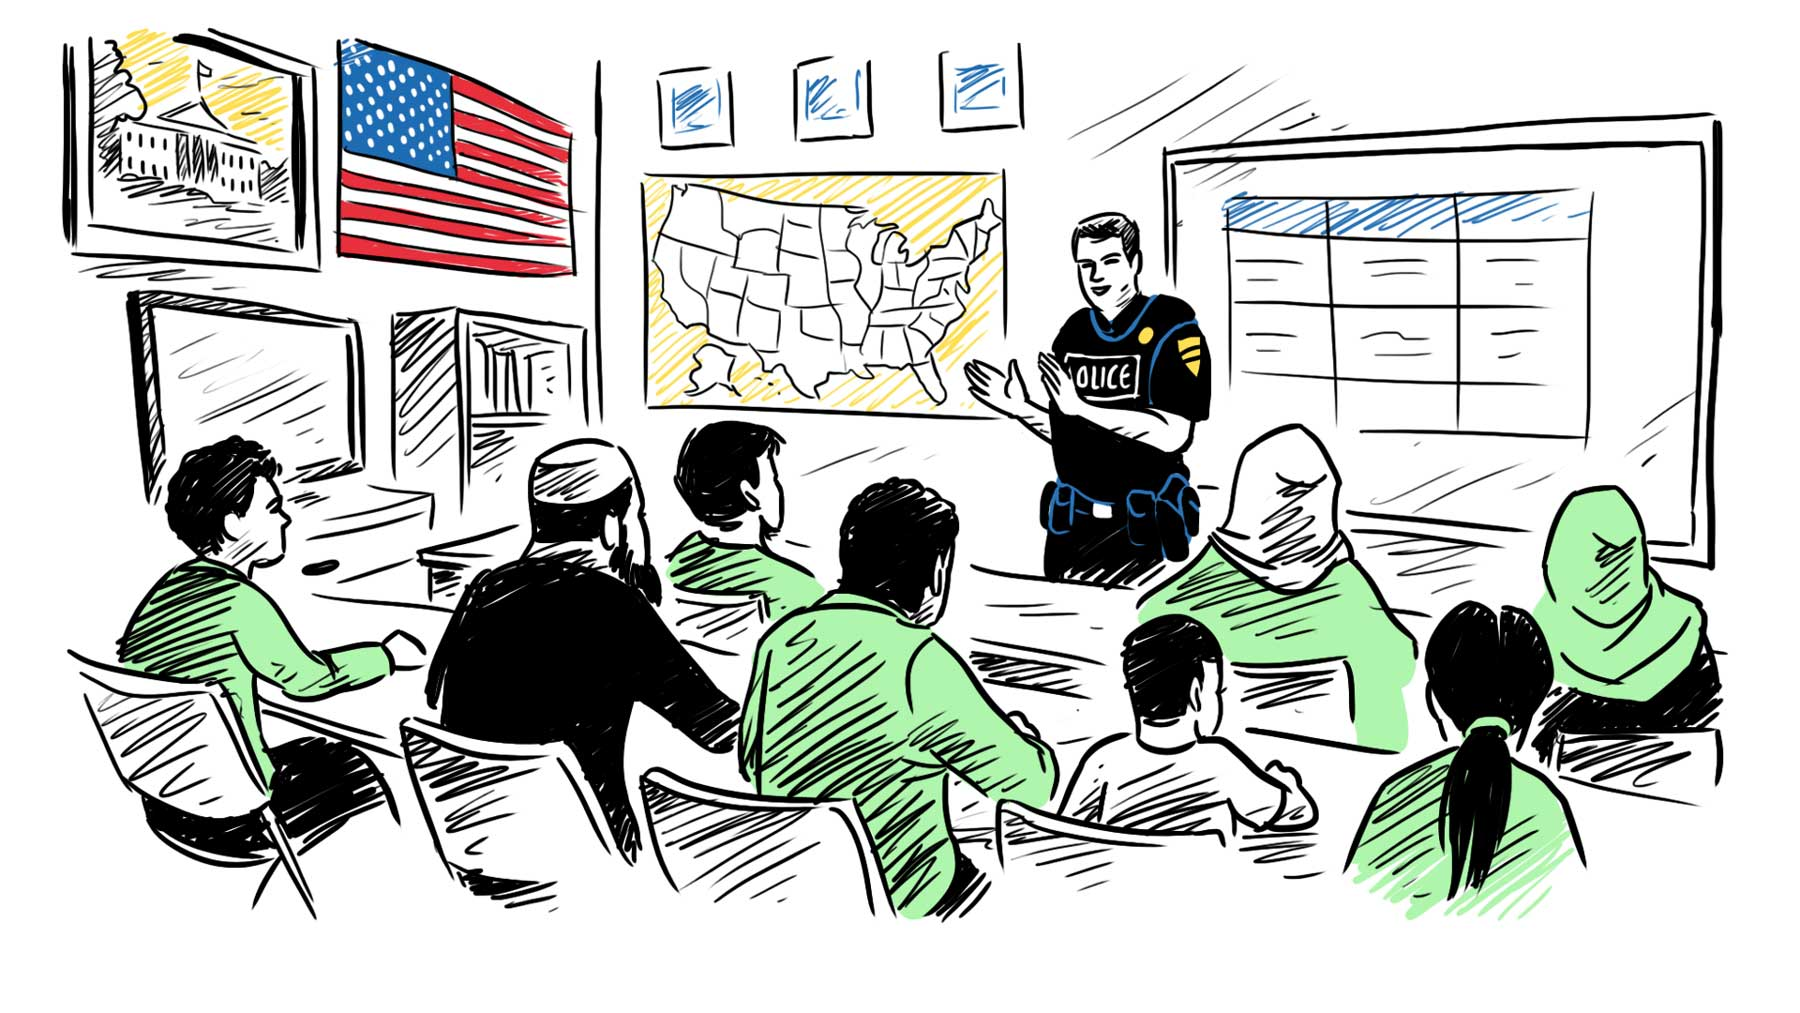 Drawn image of a police officer talking to a class of refugees